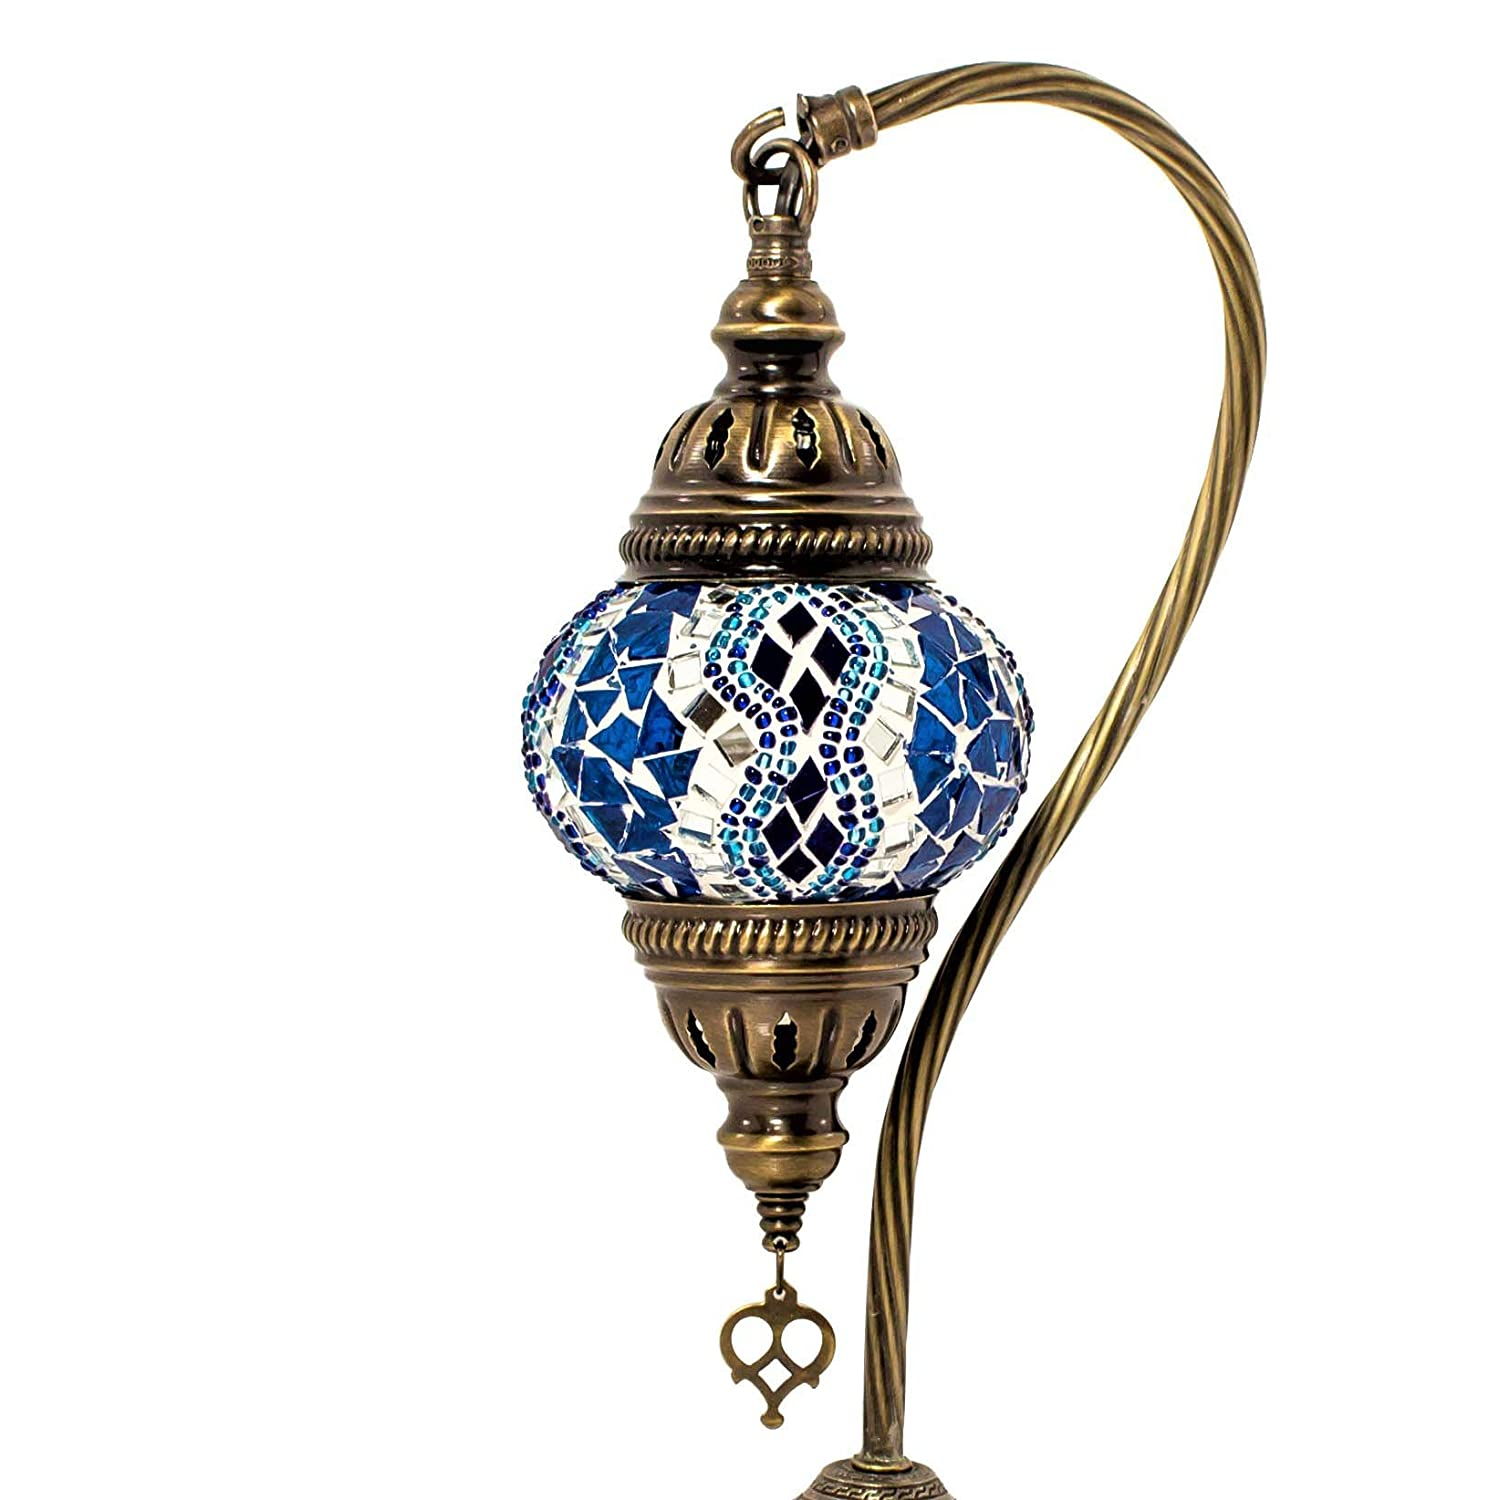 Unique Globe Lampshade Swan Neck Series by TK BAZAAR Turkish Mosaic Table Lamp,Stunning Moroccan Style